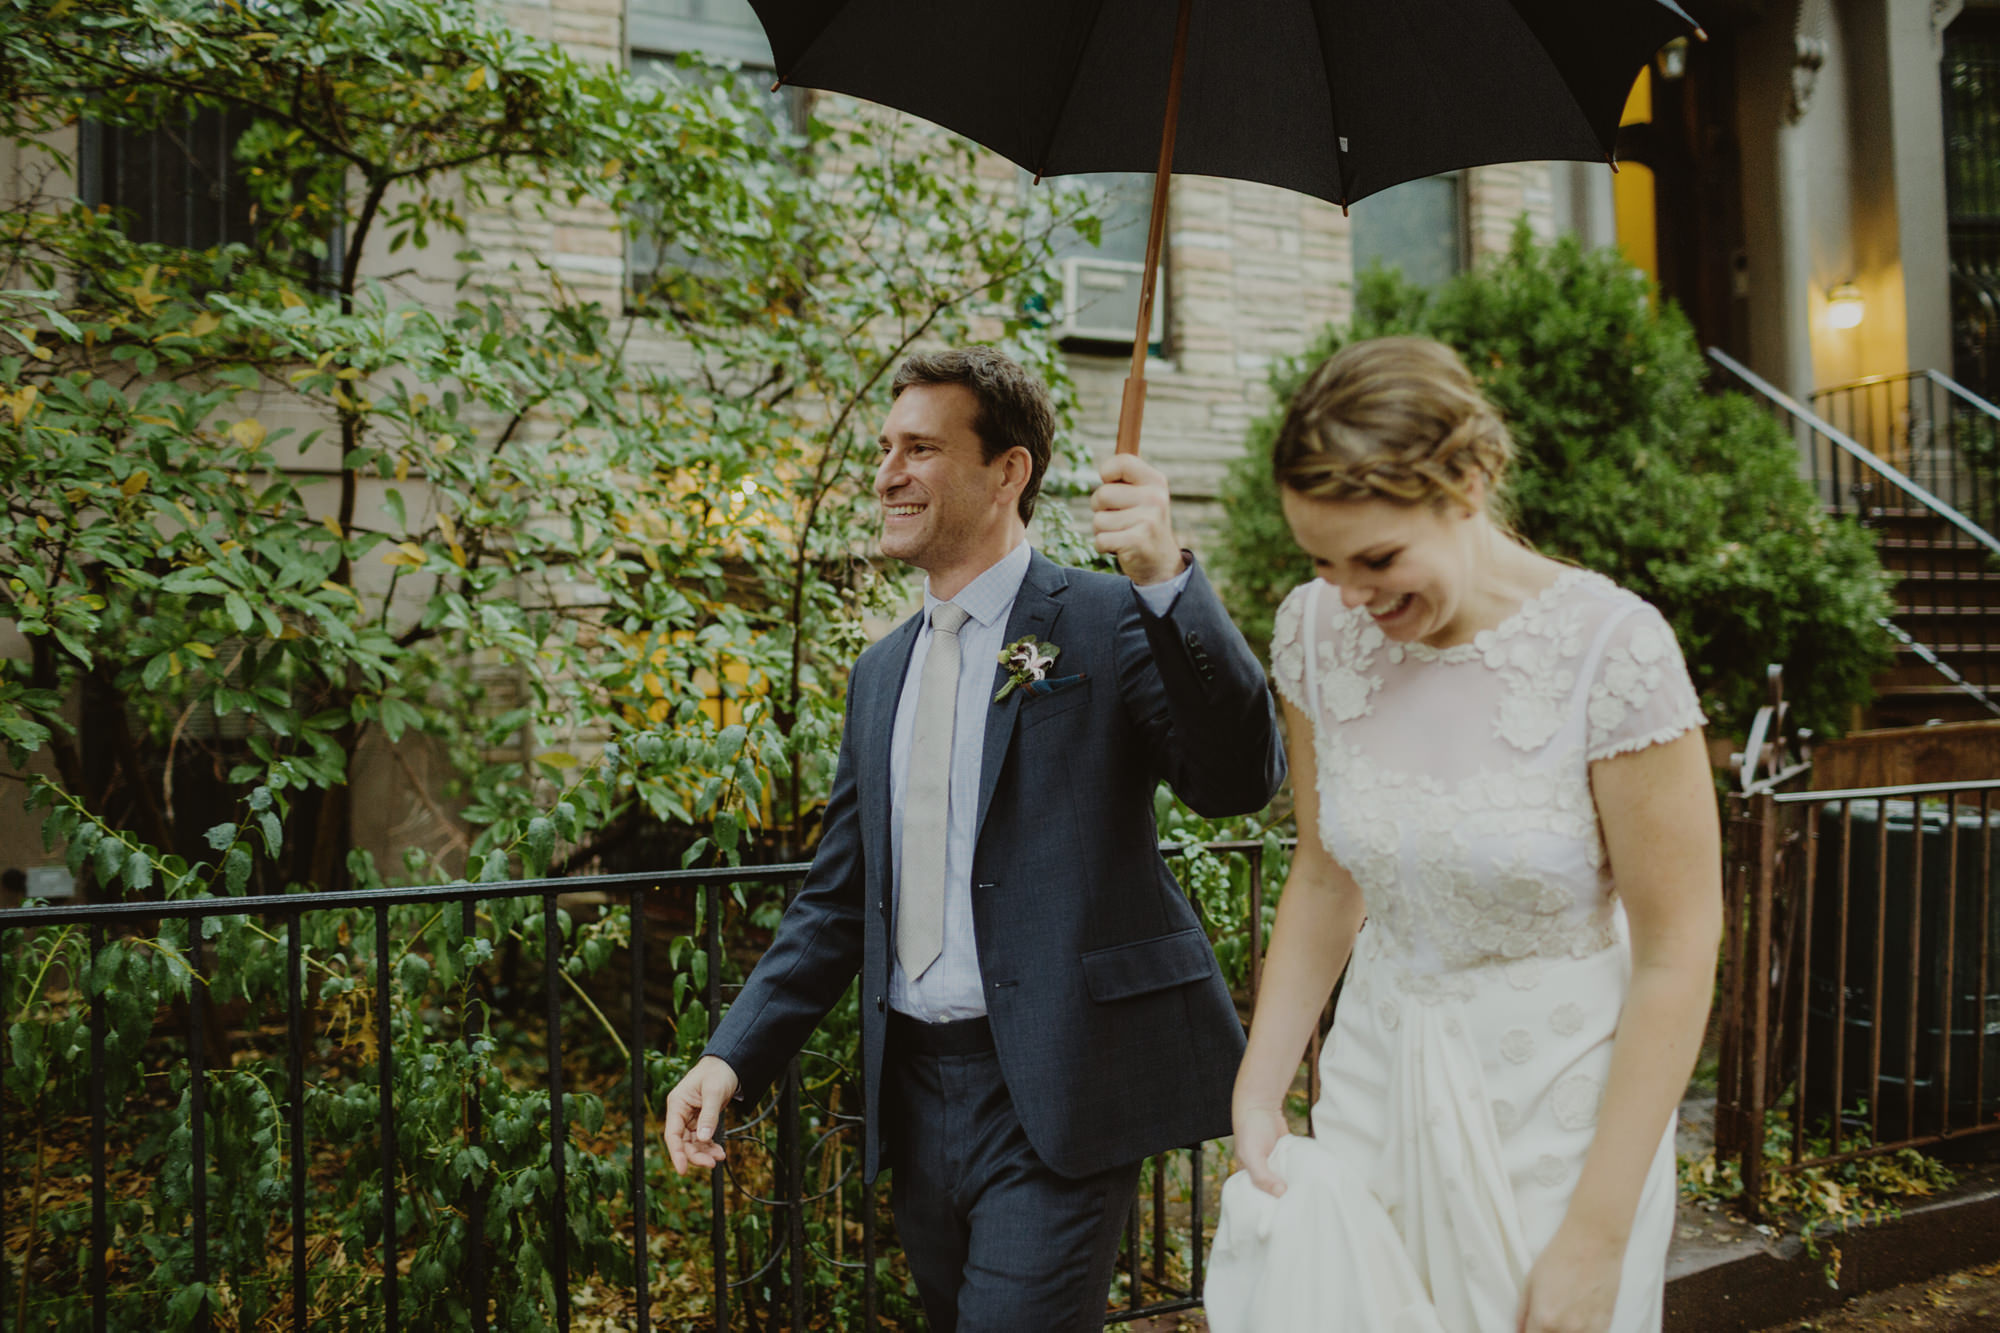 brooklyn_wedding_flatbushfarm_sammblake_019.jpg